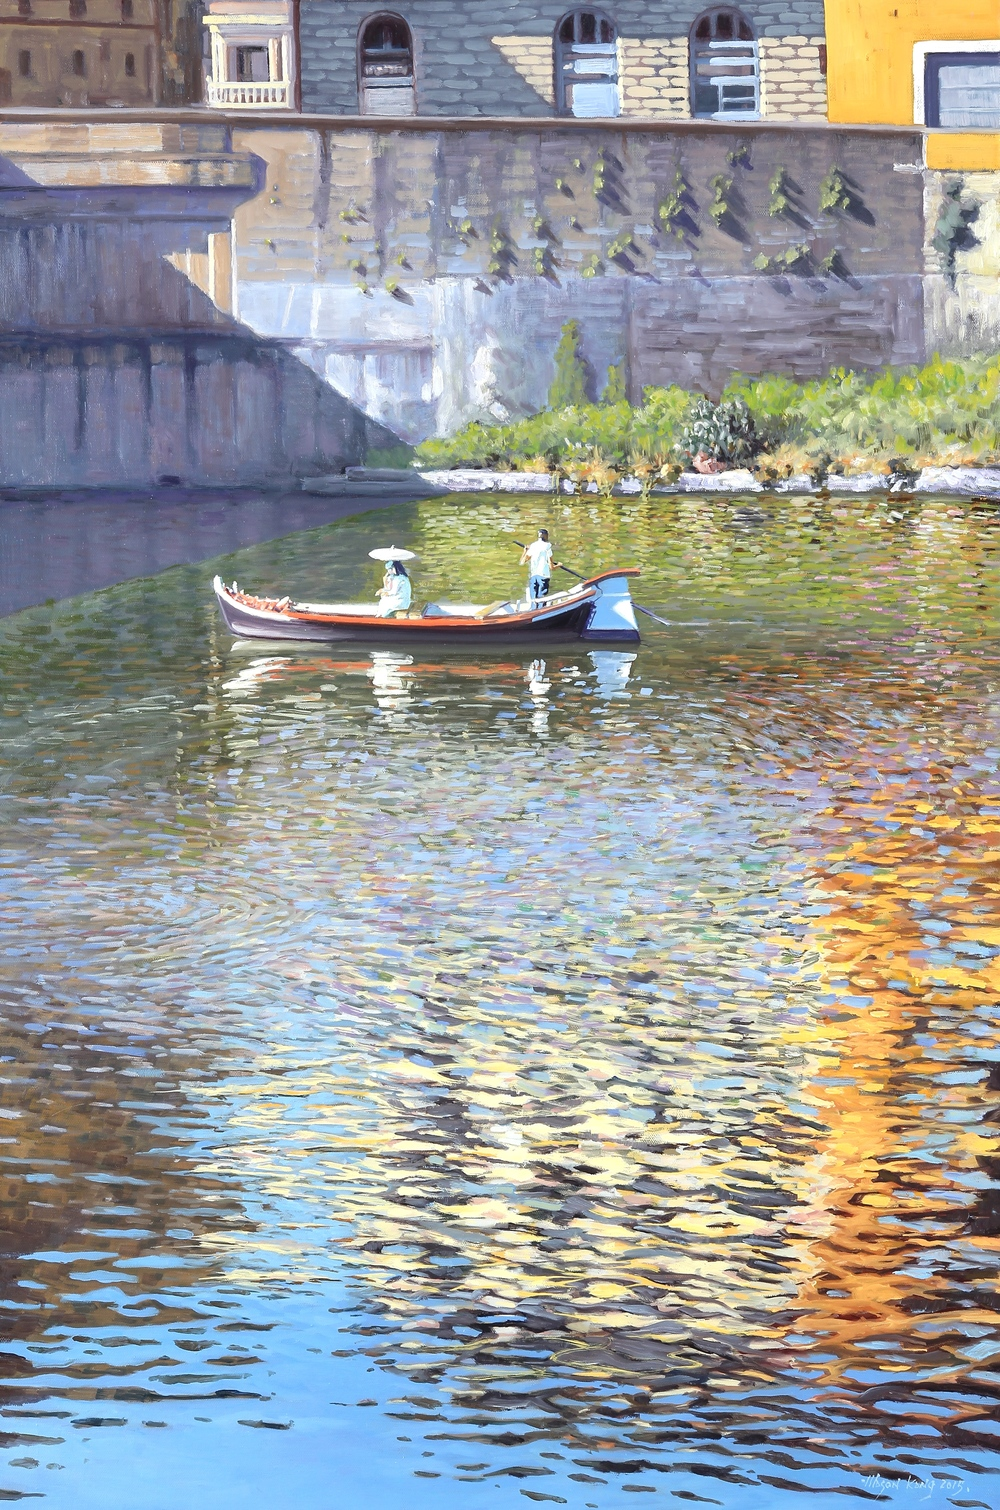 """Boating on Arno"" by Mansung Kang"